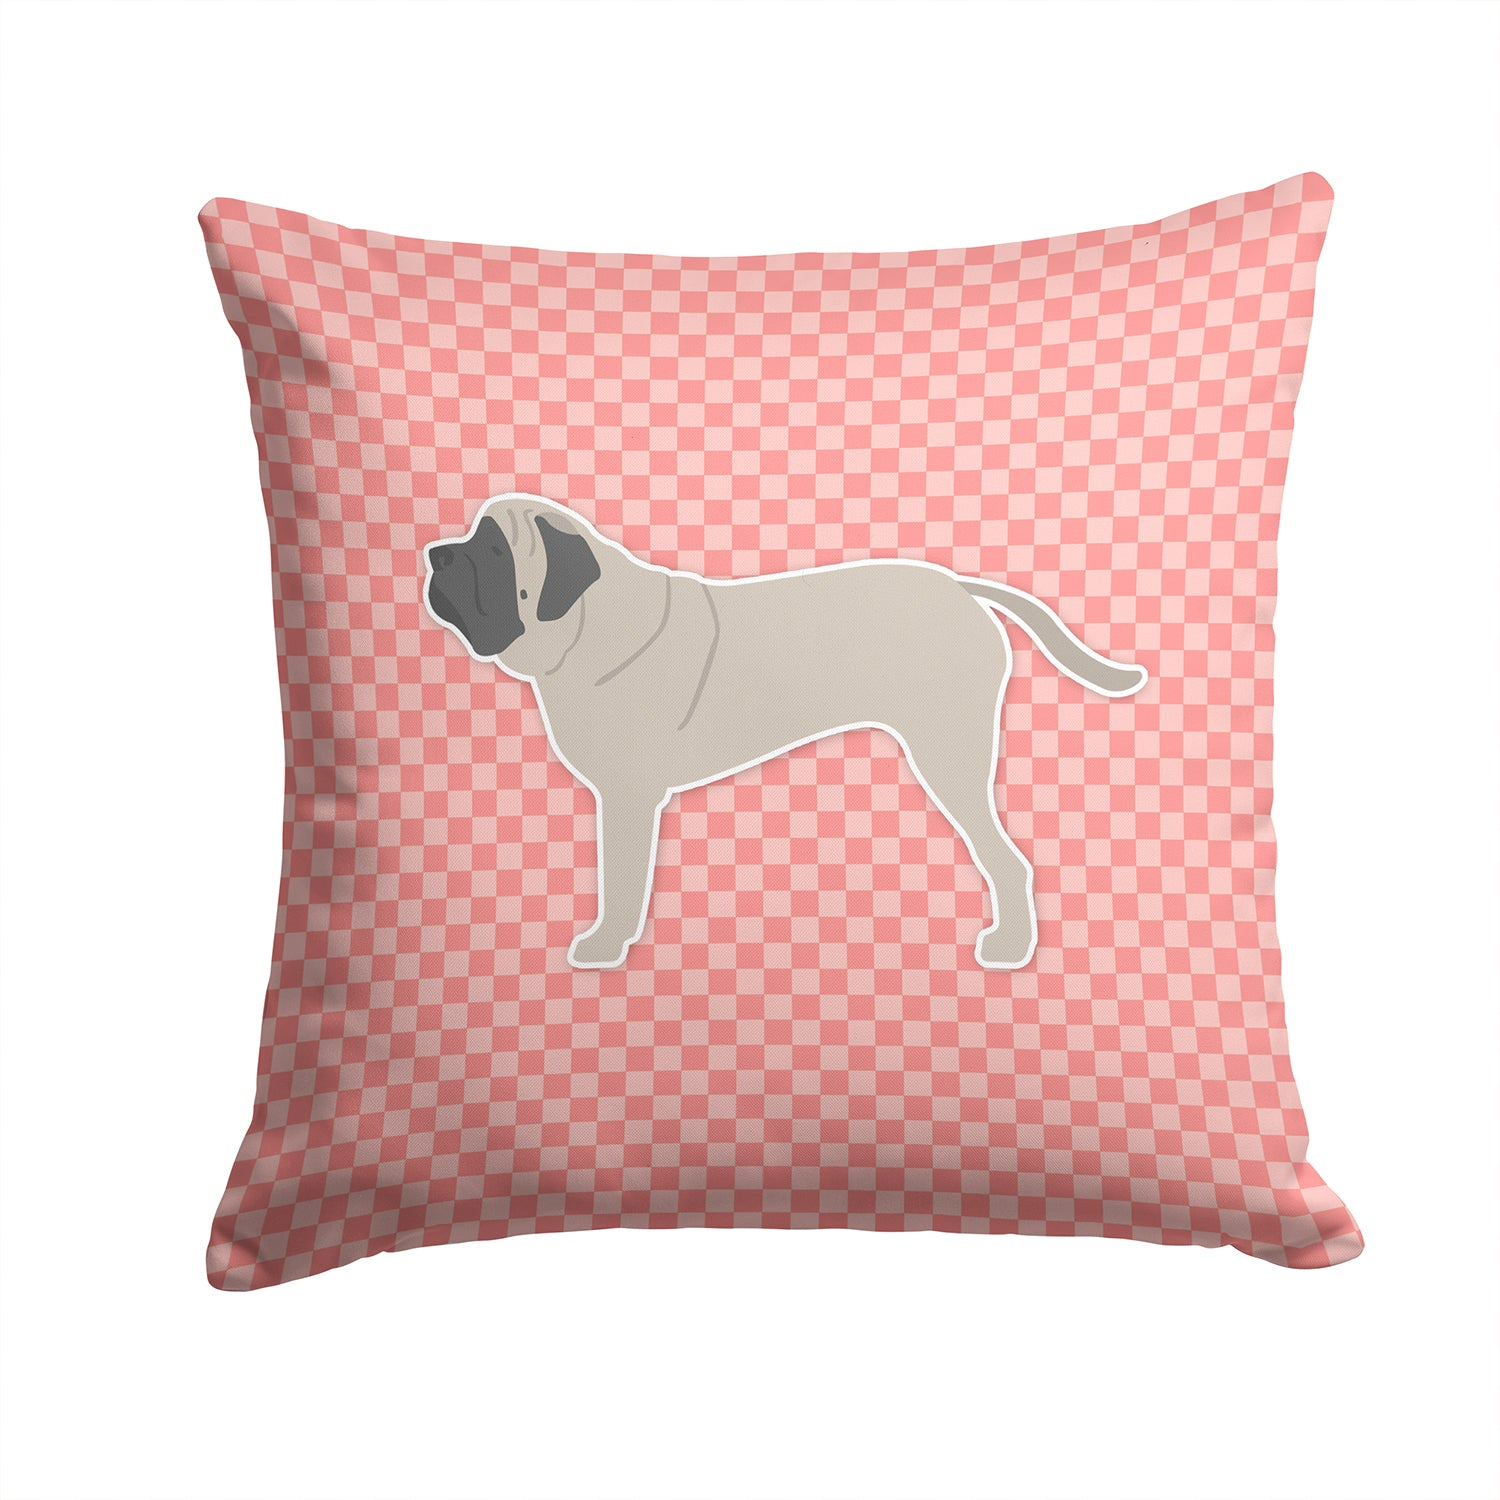 English Mastiff Checkerboard Pink Fabric Decorative Pillow BB3656PW1414 by Caroline's Treasures